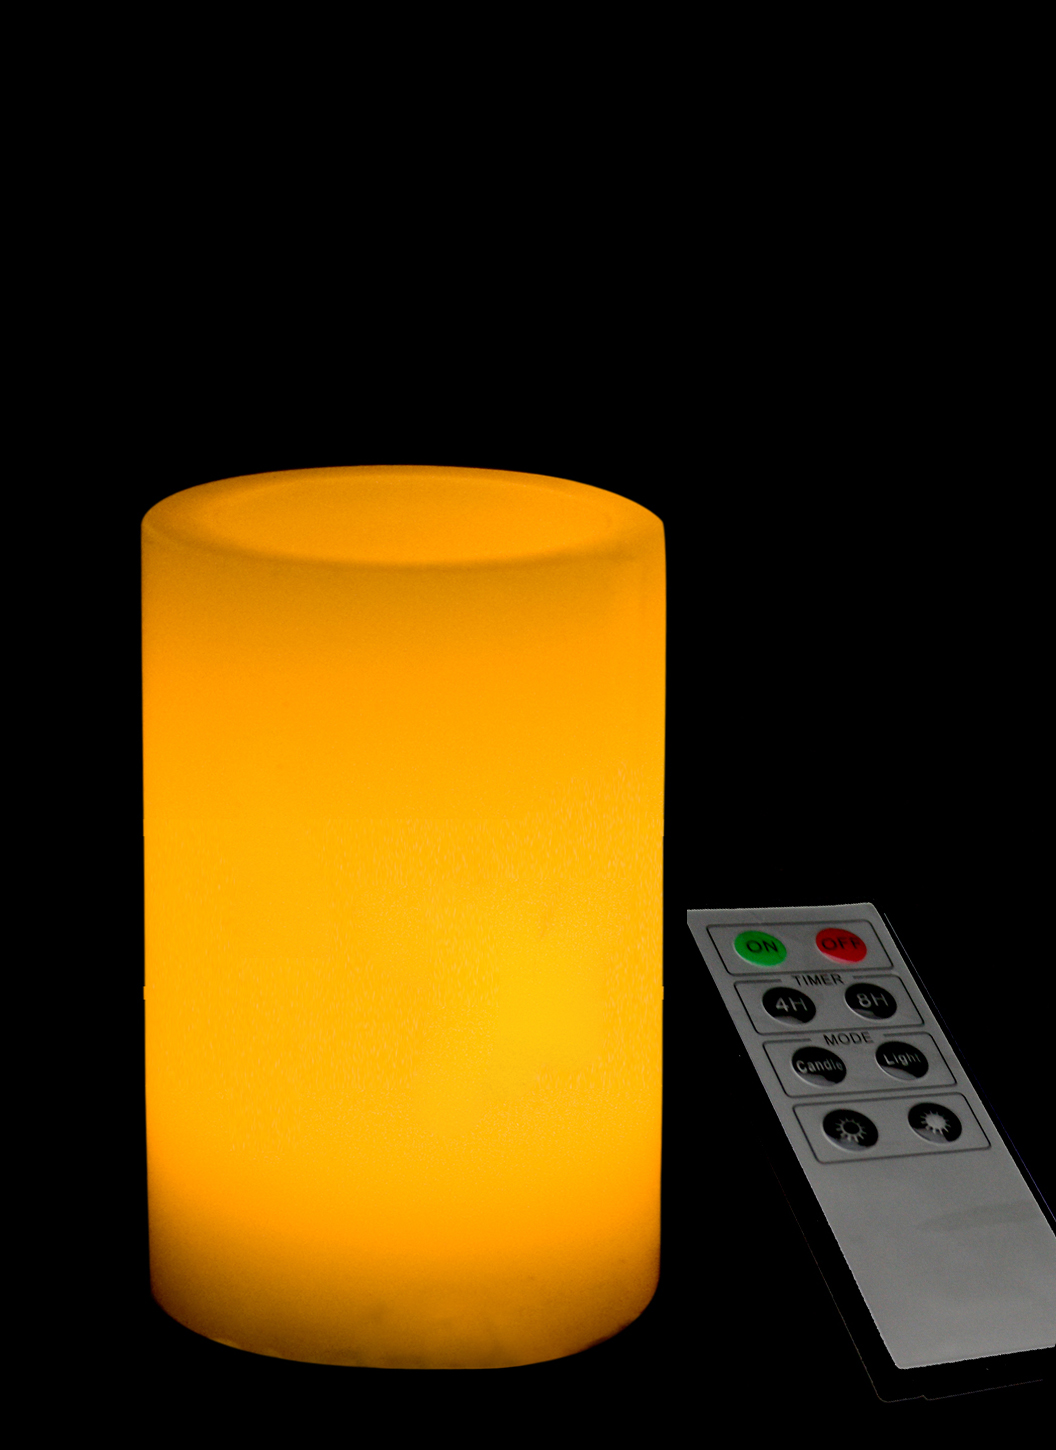 3.5x5 Inch Remote Control Outdoor Luminara Candles - White - 6 Pack